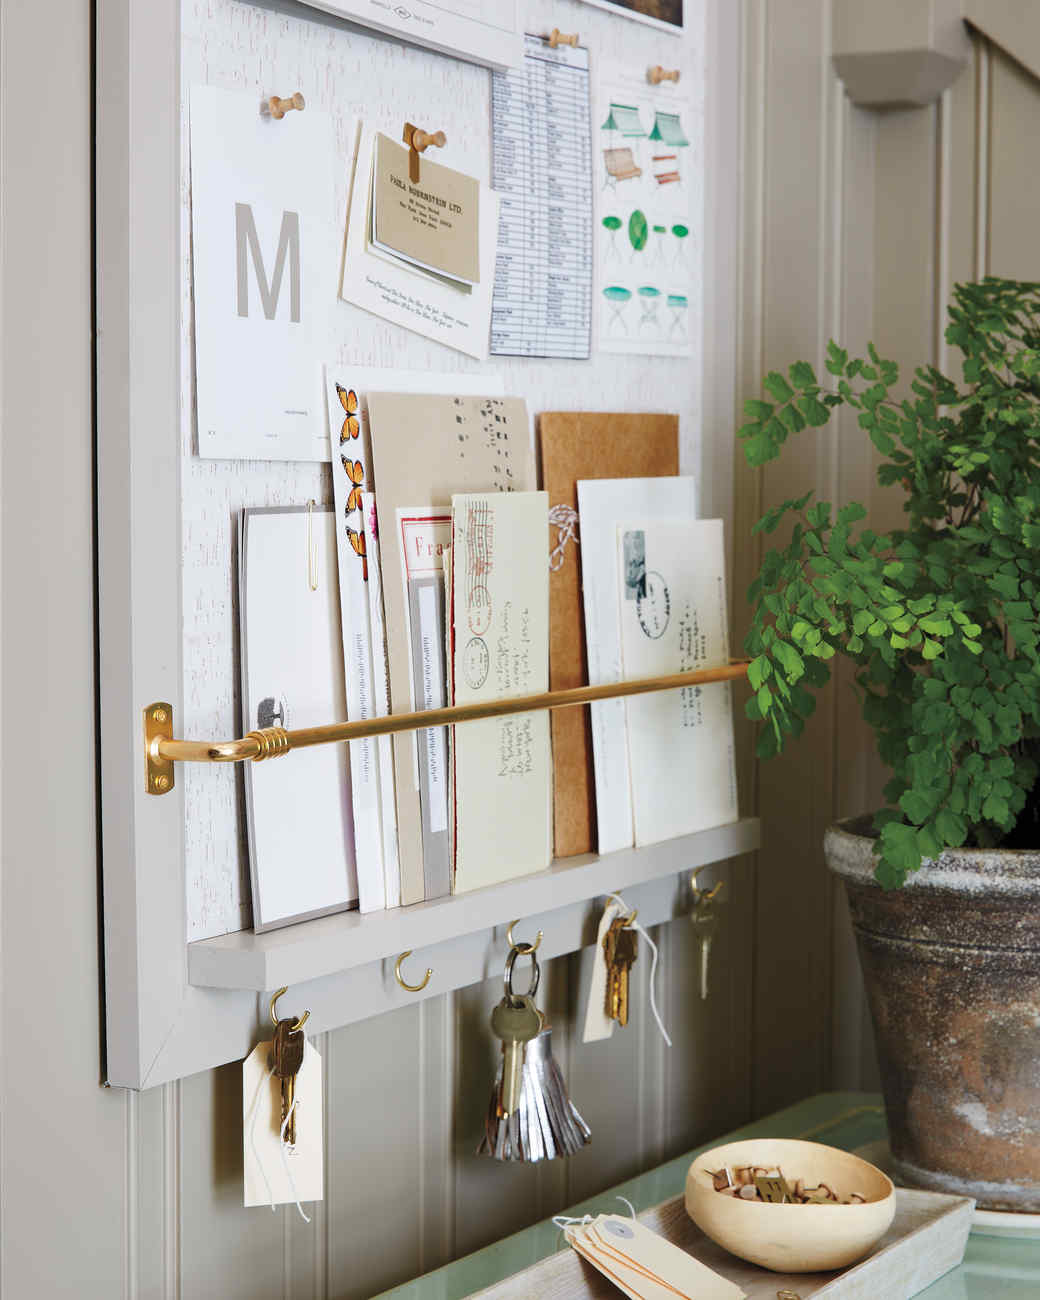 Entryway-Organizer How-To | Martha Stewart on storage ideas, mail art ideas, mail sorting ideas, organization for mail keys and ideas, organize mail office ideas, mail storage solutions,